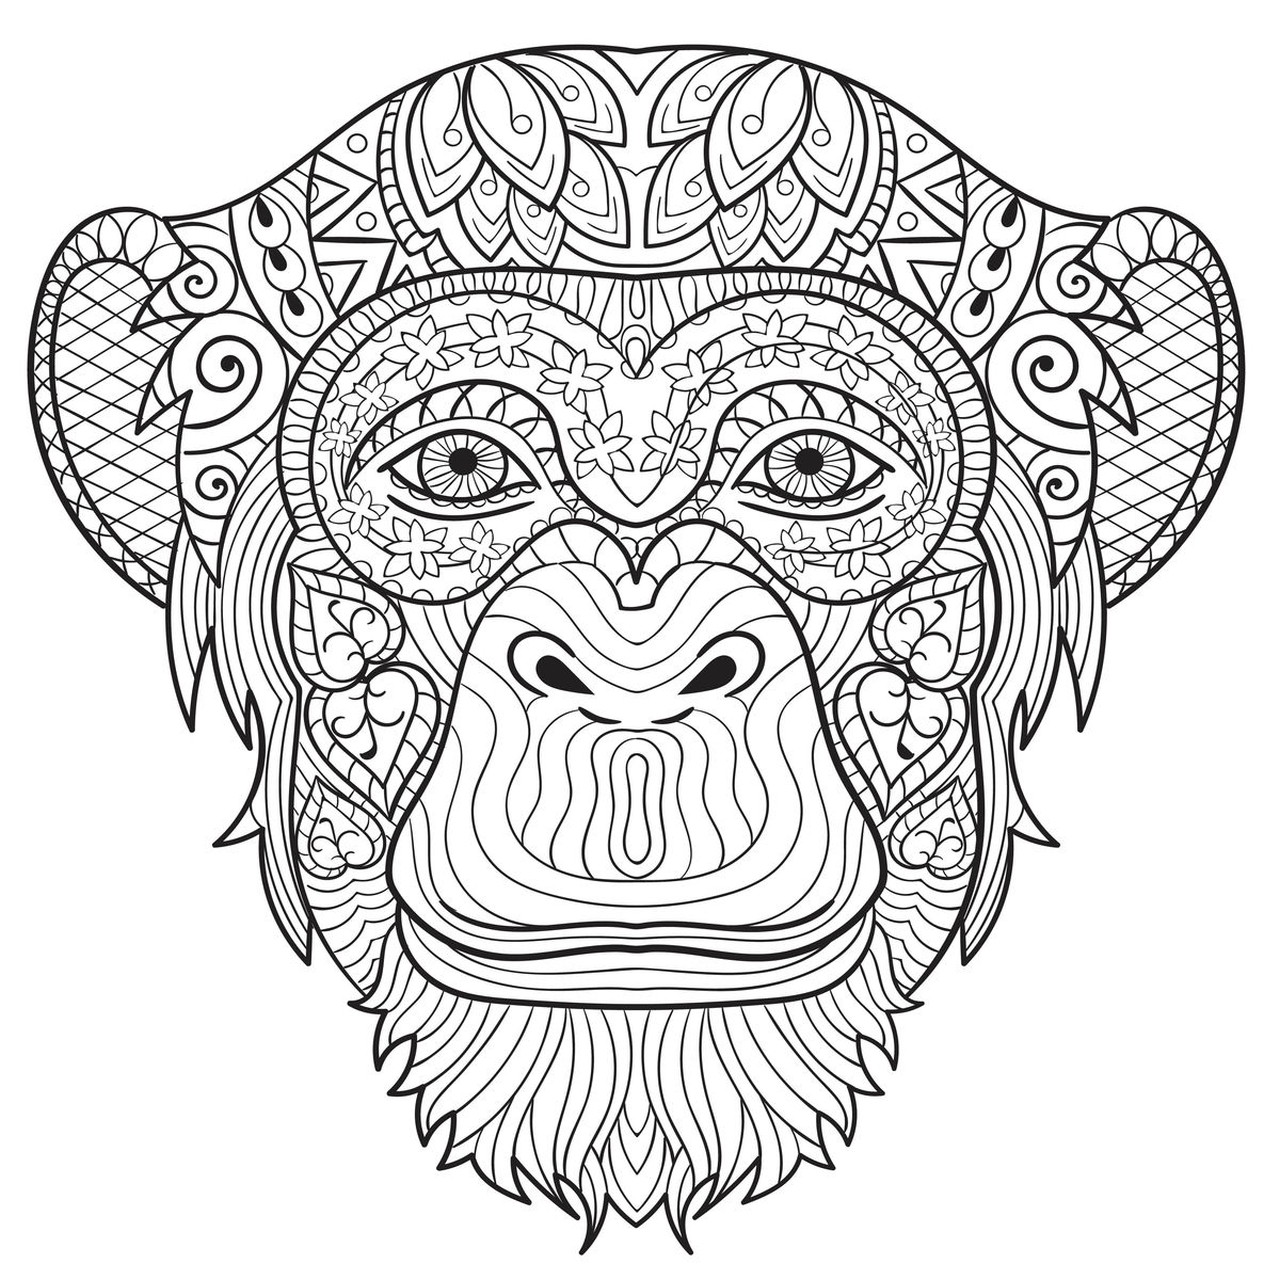 monkey coloring pages for adults 31902 - Monkey Coloring Pages